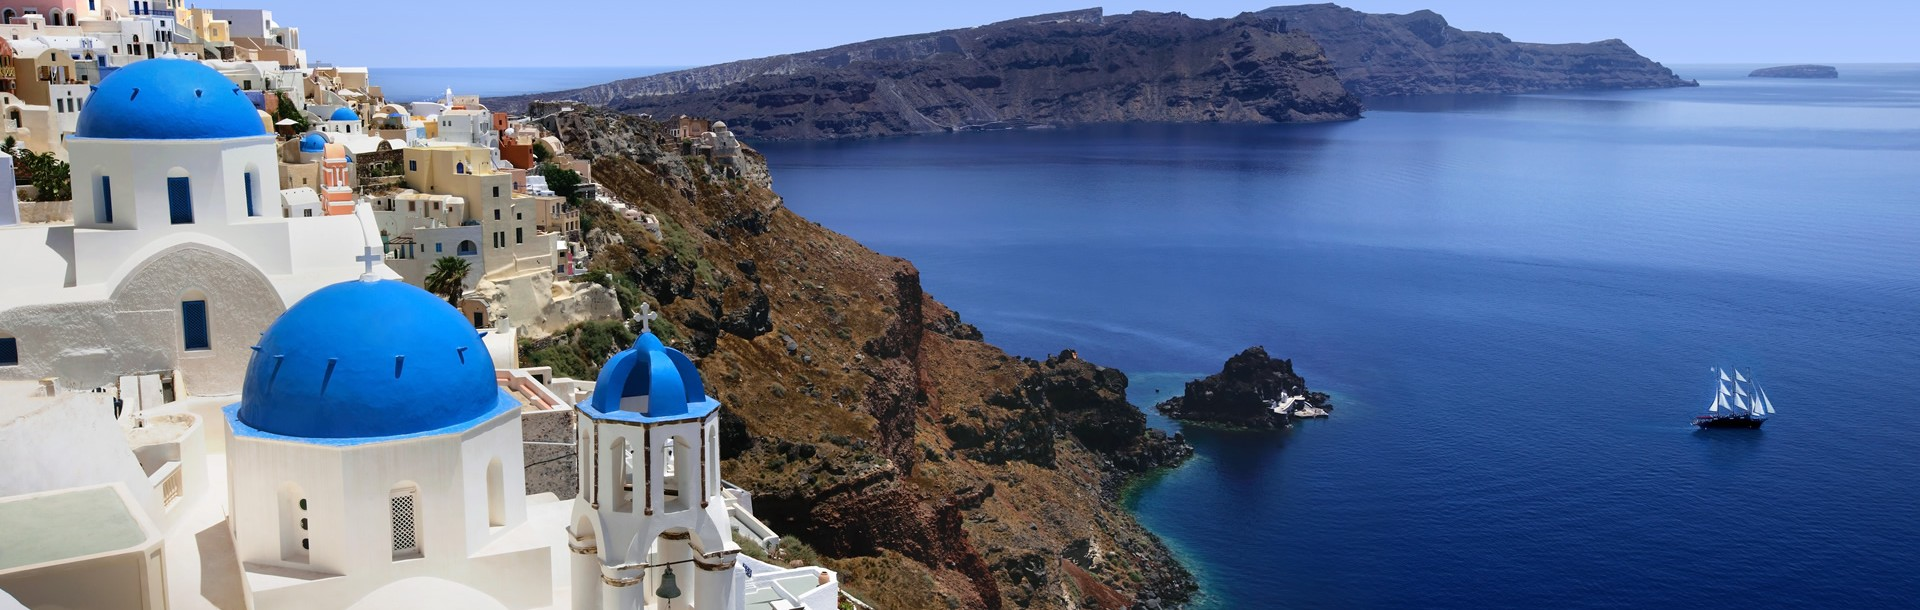 CHI Travel Insurance Santorini, Greek Isles